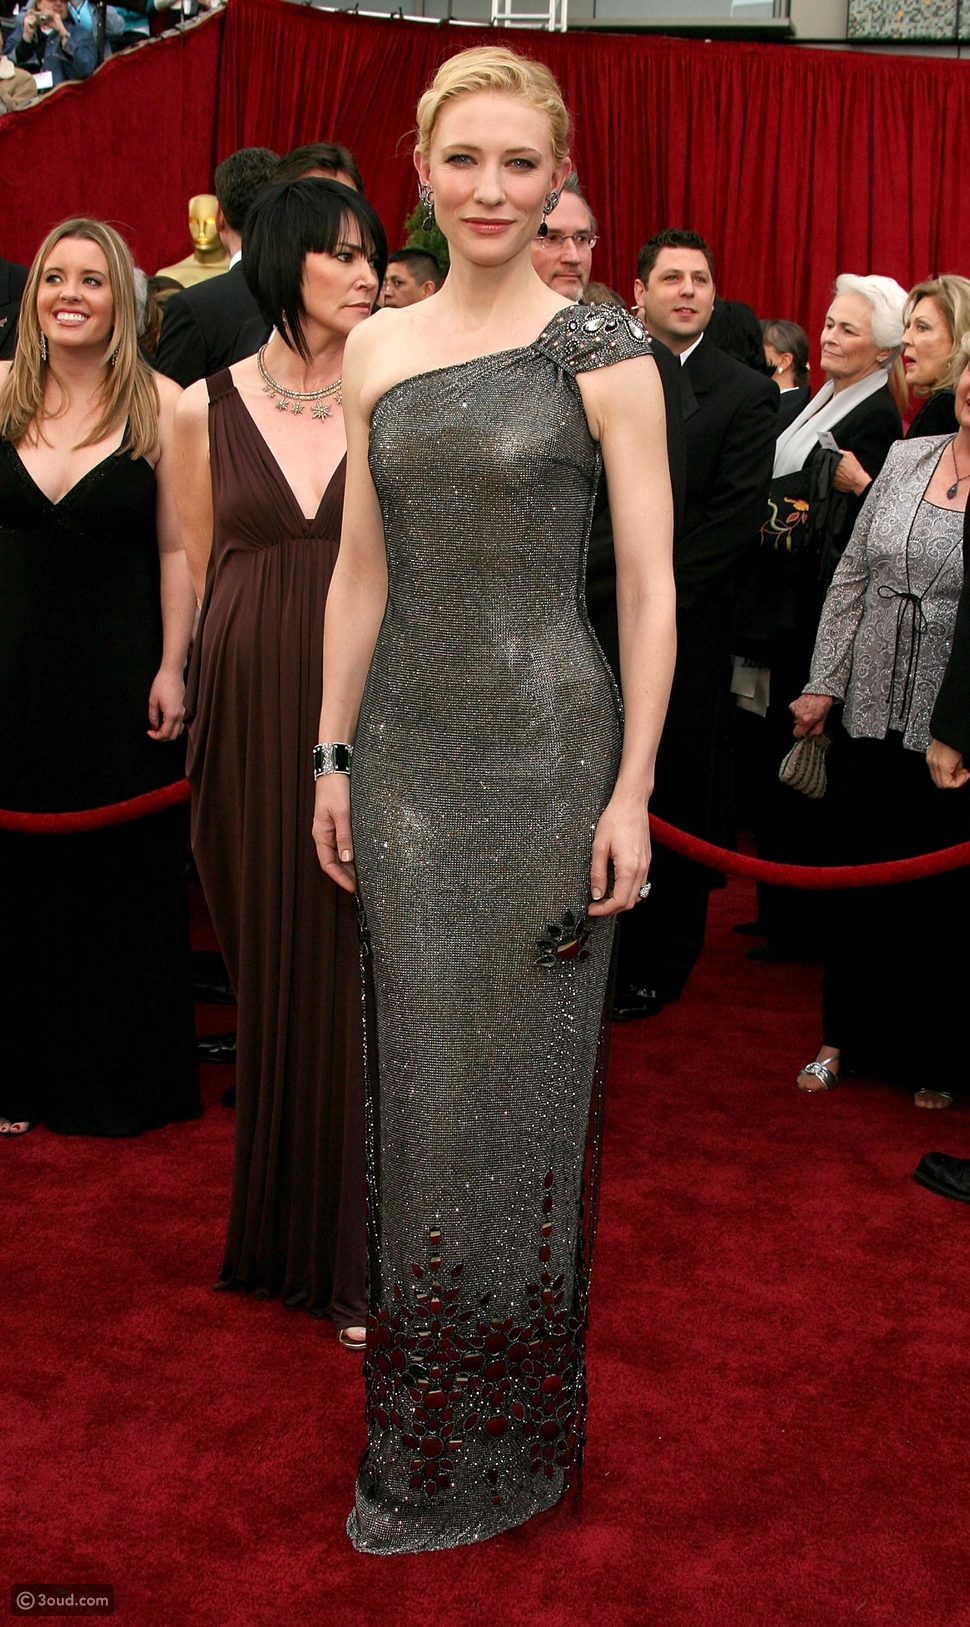 Armani Prive gown decorated with Swarovski crystals that was worn by Cate Blanchett at the 2007 Oscars  $250,000